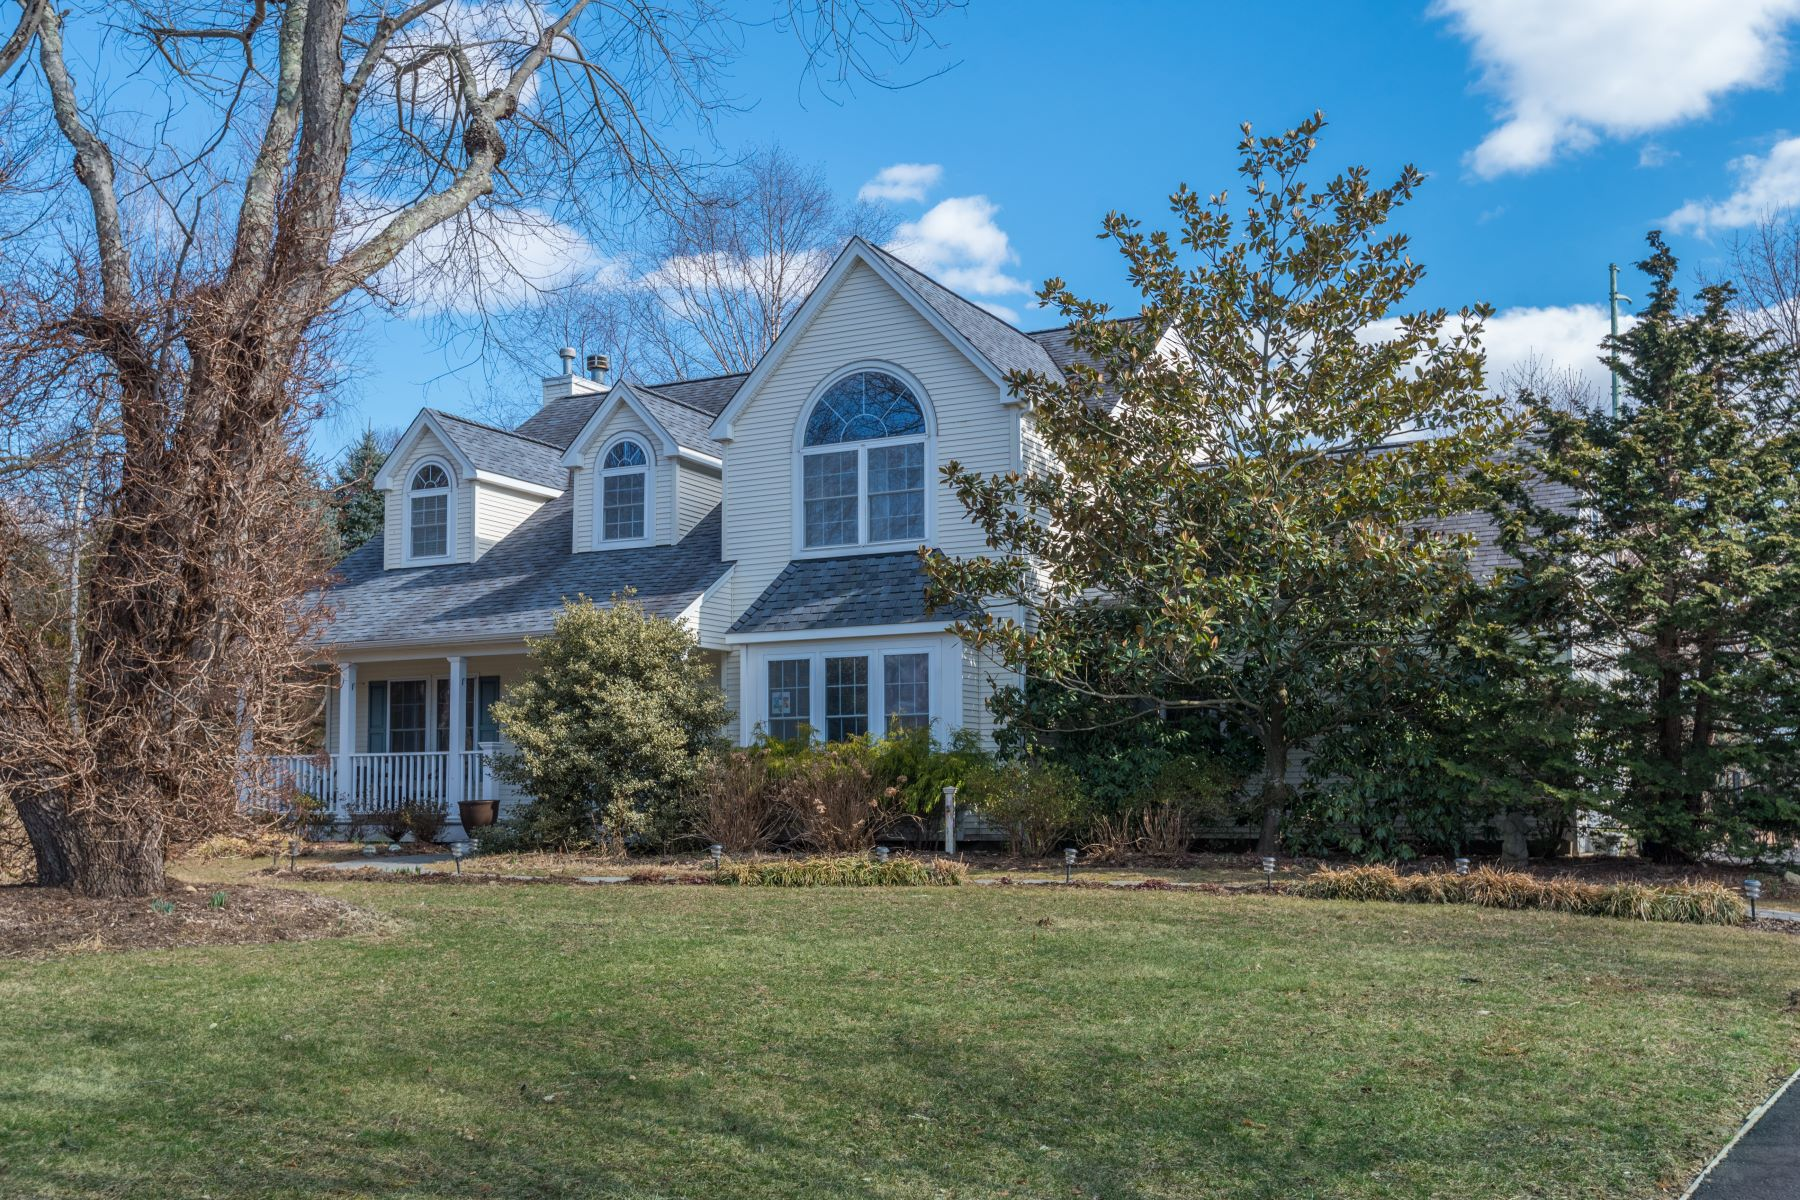 Single Family Homes for Active at Greenlawn 8 Harborfields Ct Greenlawn, New York 11740 United States